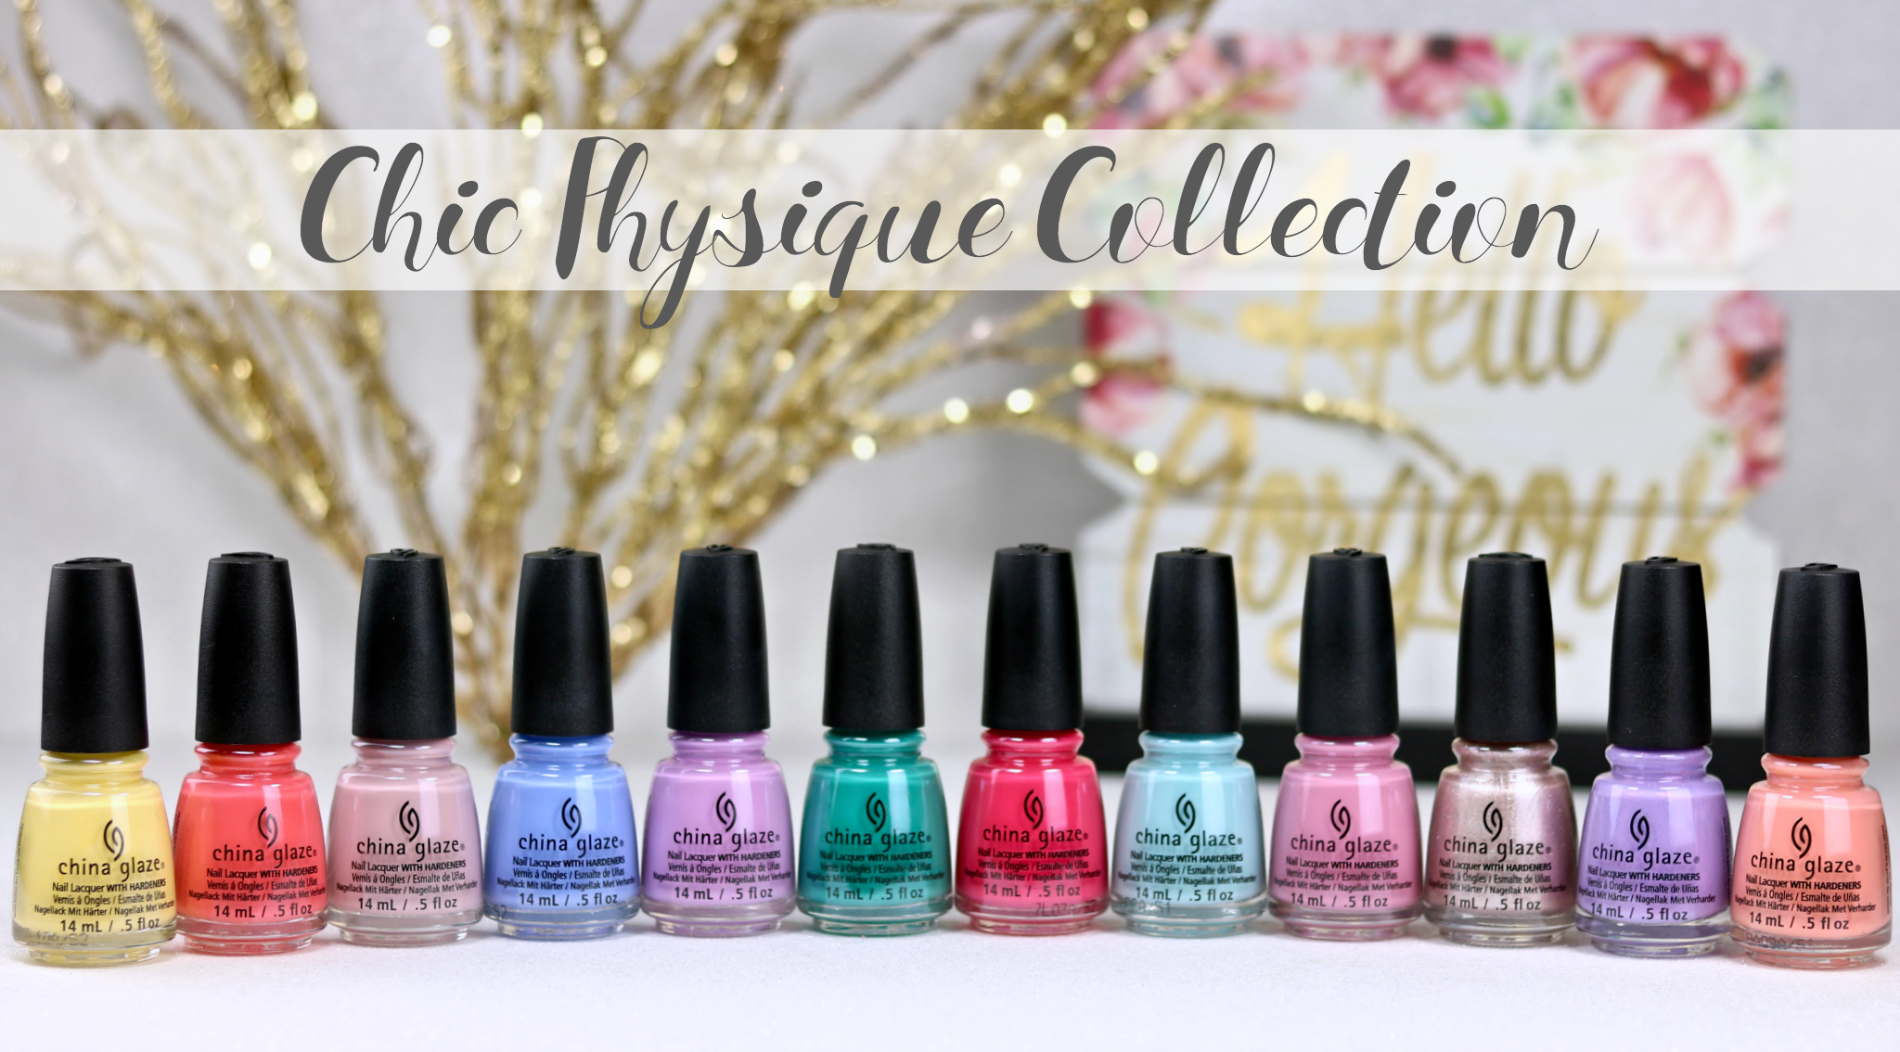 China Glaze Chic Physique Collection The Feminine Files